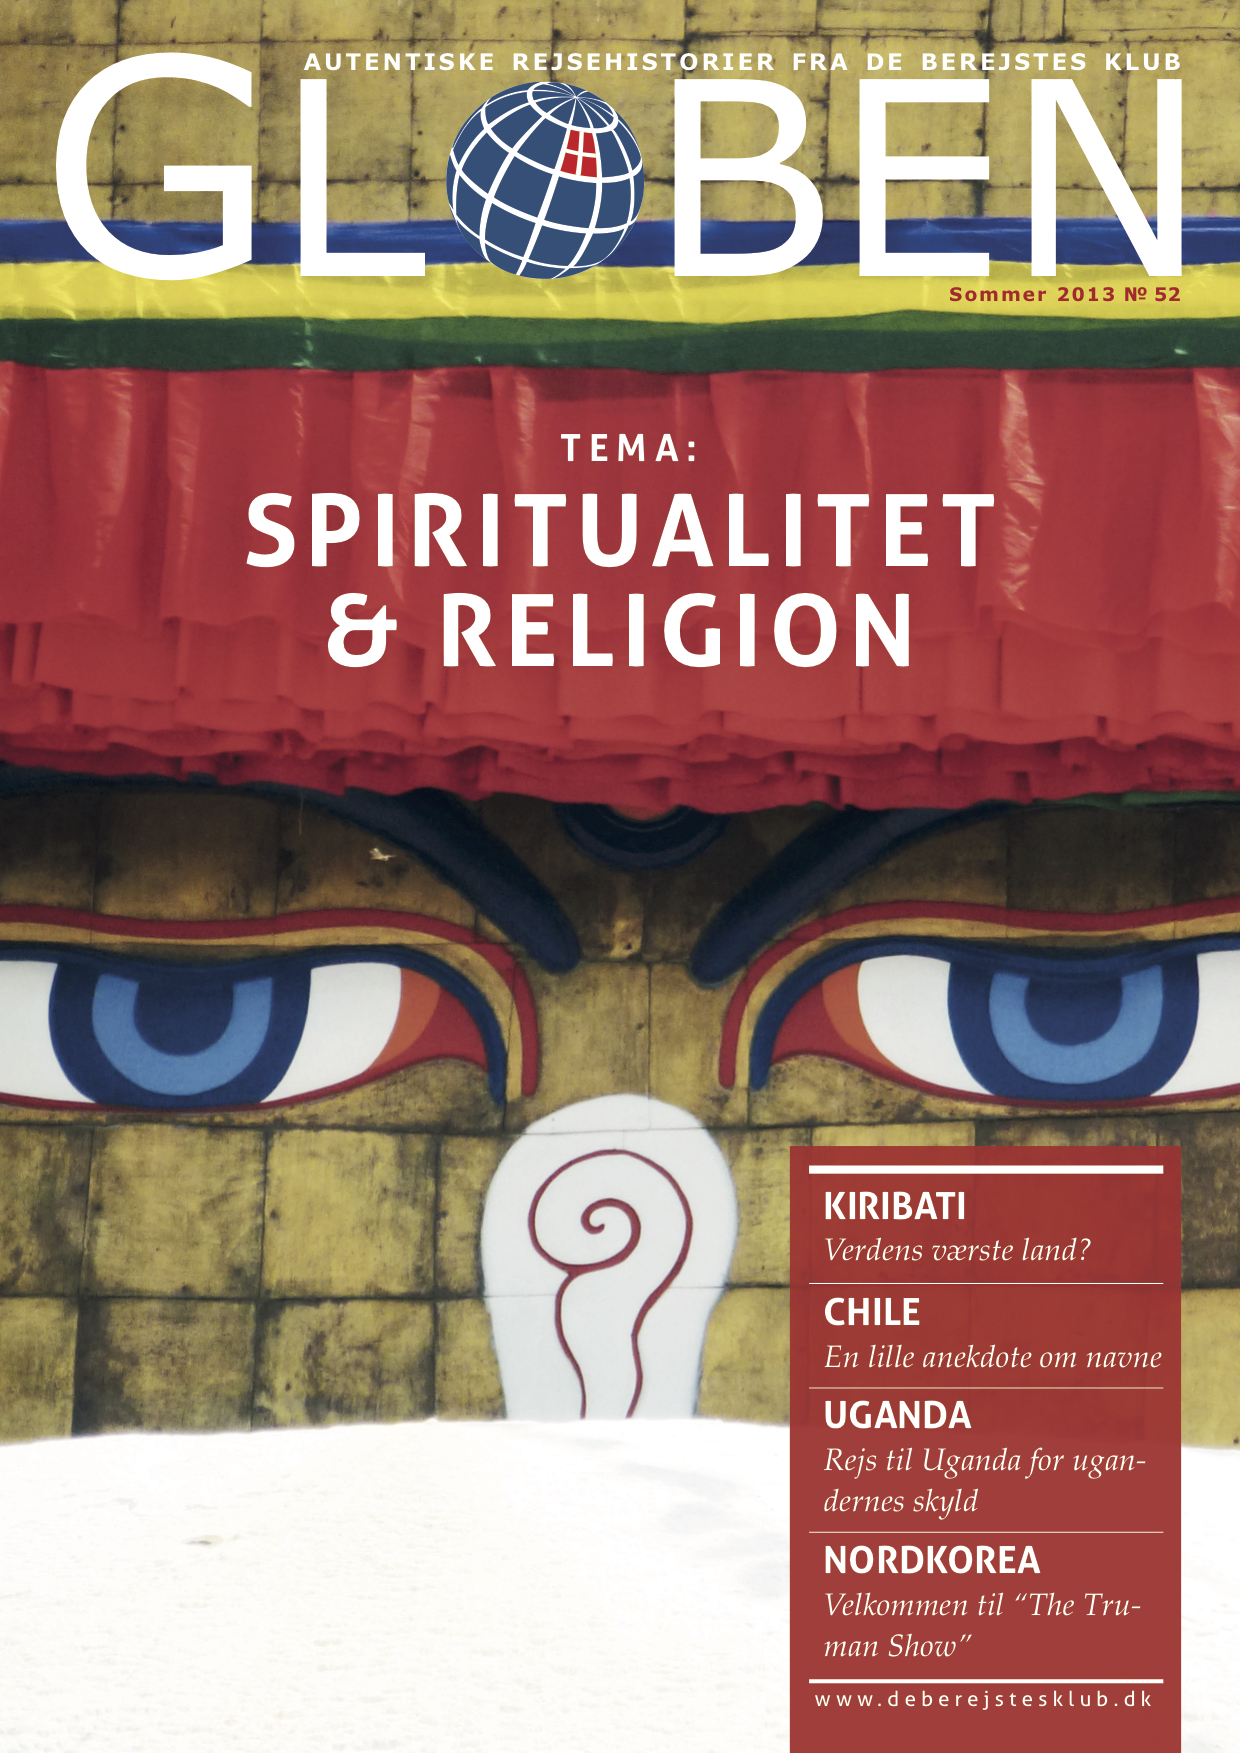 Issue 52: Spiritualitet & Religion    Spirituality and Religion  is the main theme for this issue, where the stories revolve around Christianity in the Vatican, Hinduism in India, Buddhism in Myanmar, Islam in Kuwait, Celtics in Germany, and more.